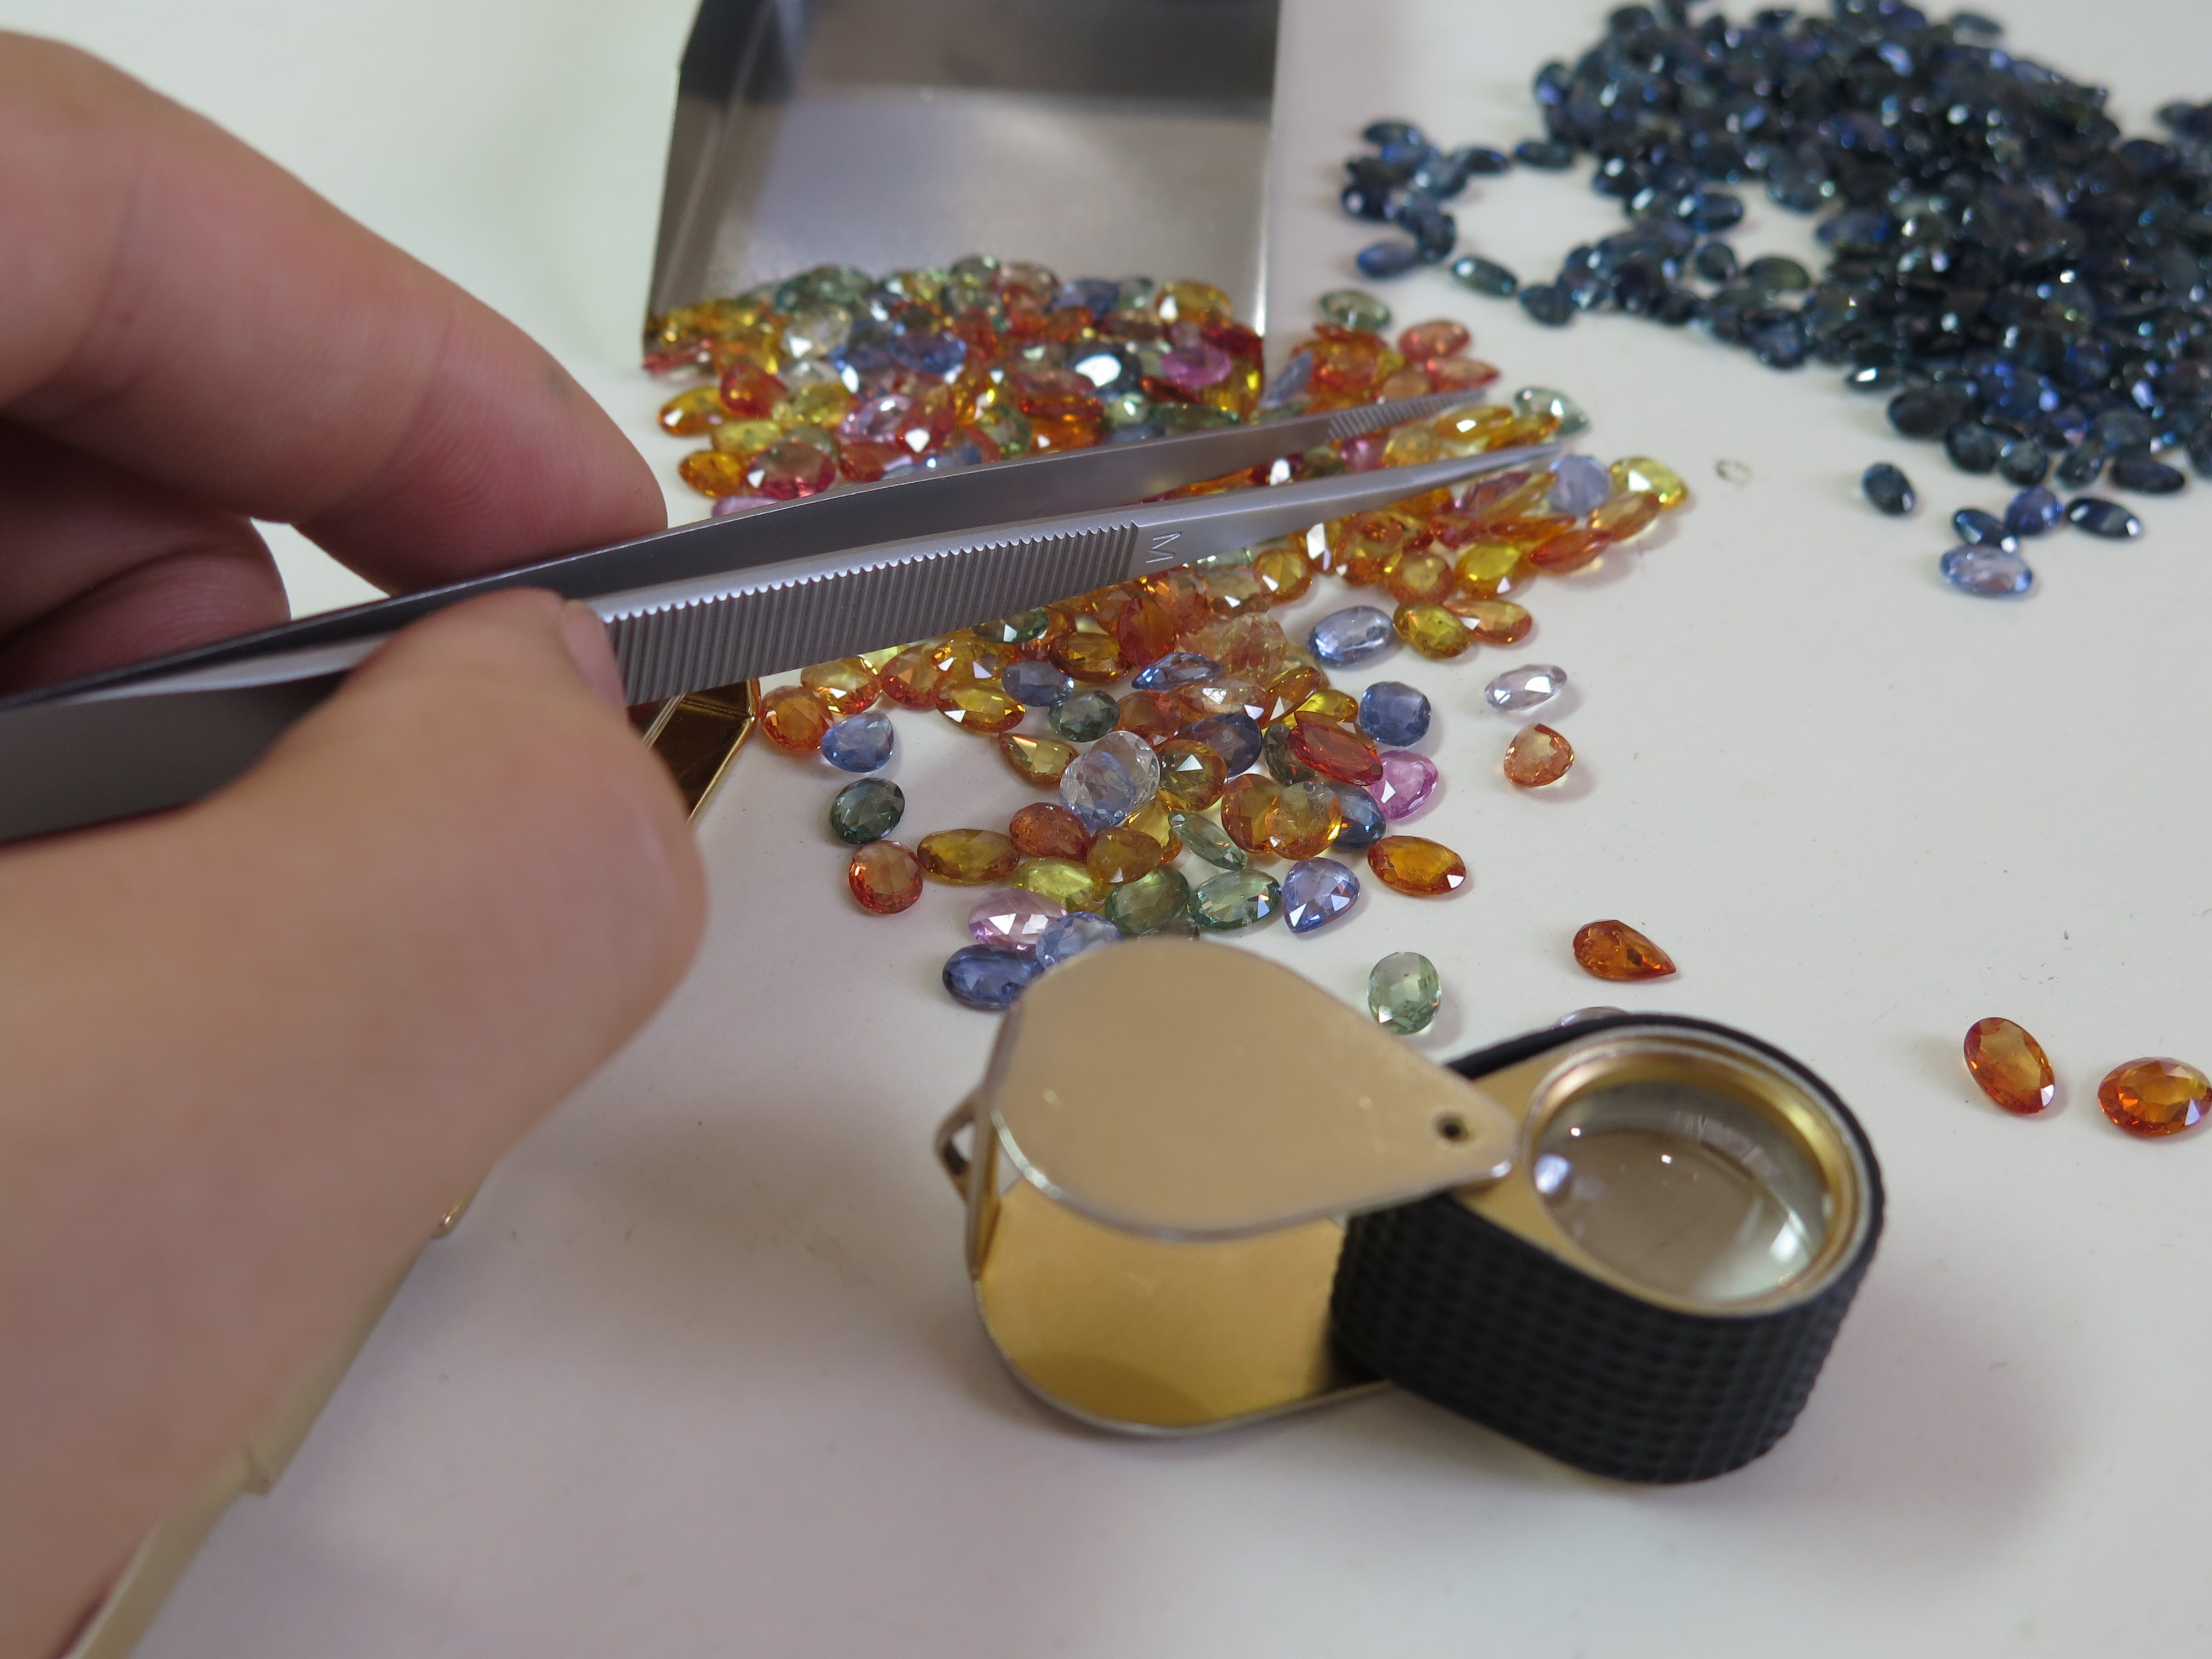 Sapphire gemstones with jewelry tweezers and loupe- Dana Walden Studio